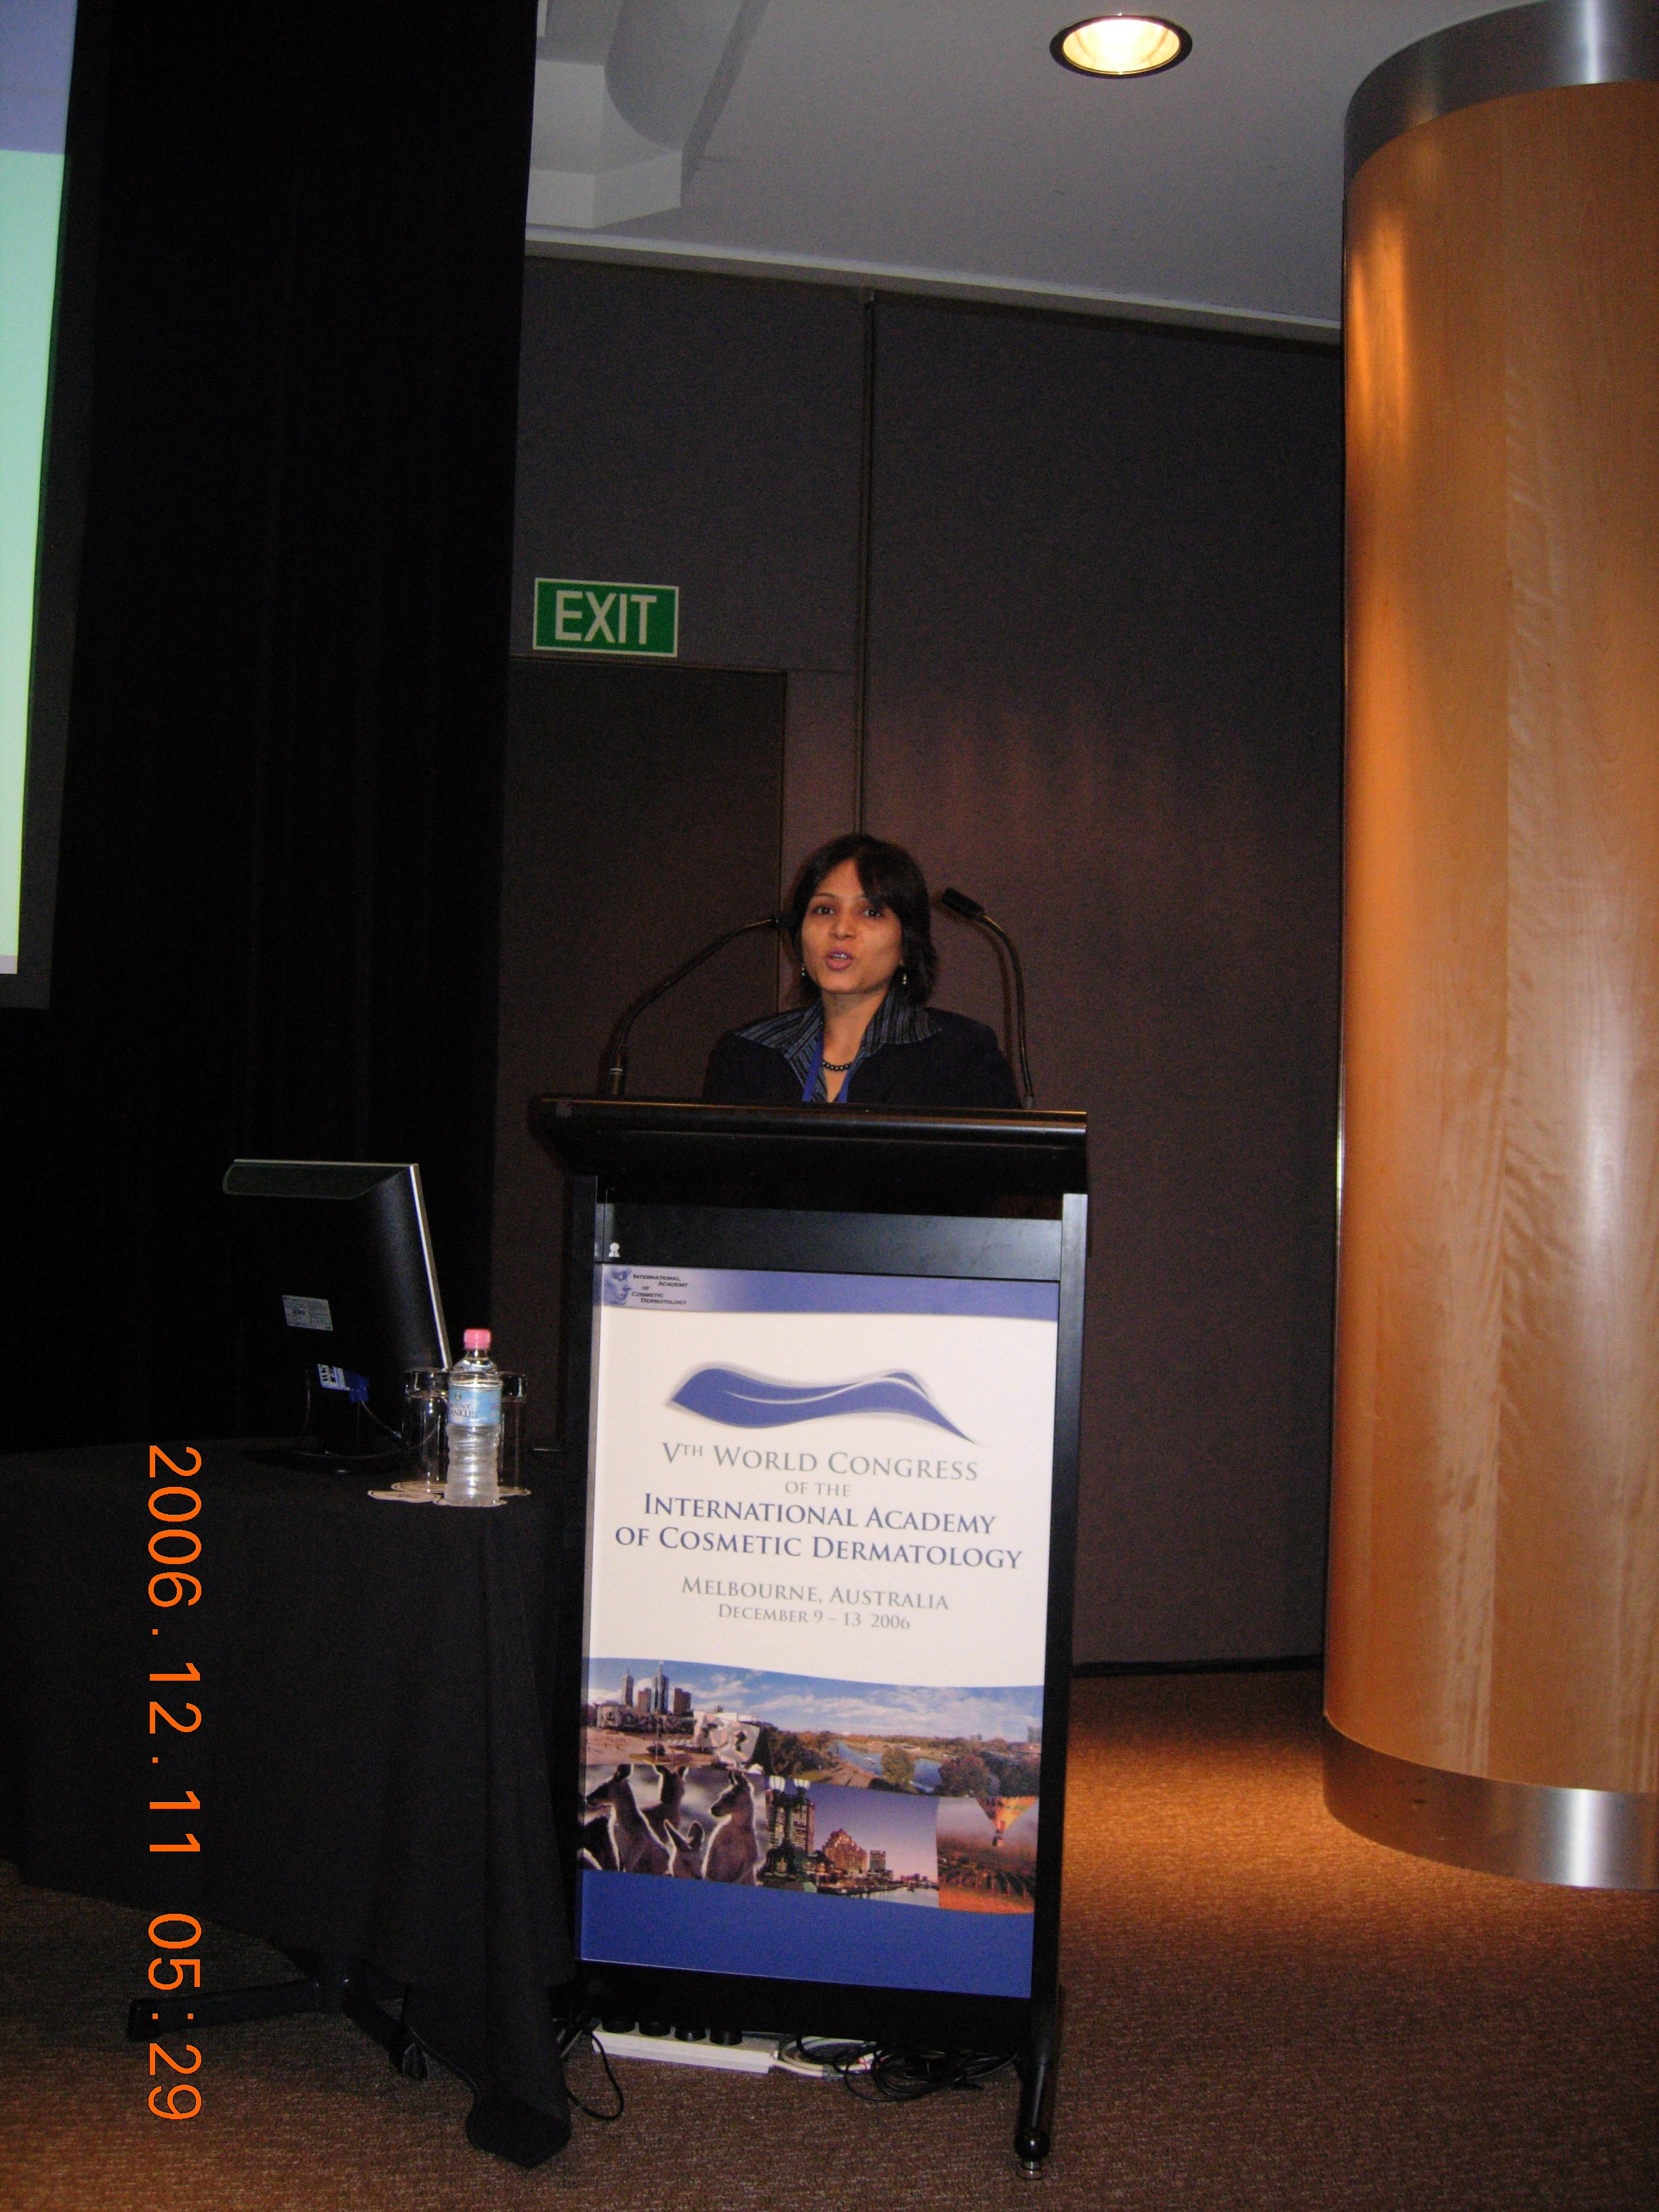 2006- Melbourne - International Academy of Cosmetic Dermatology